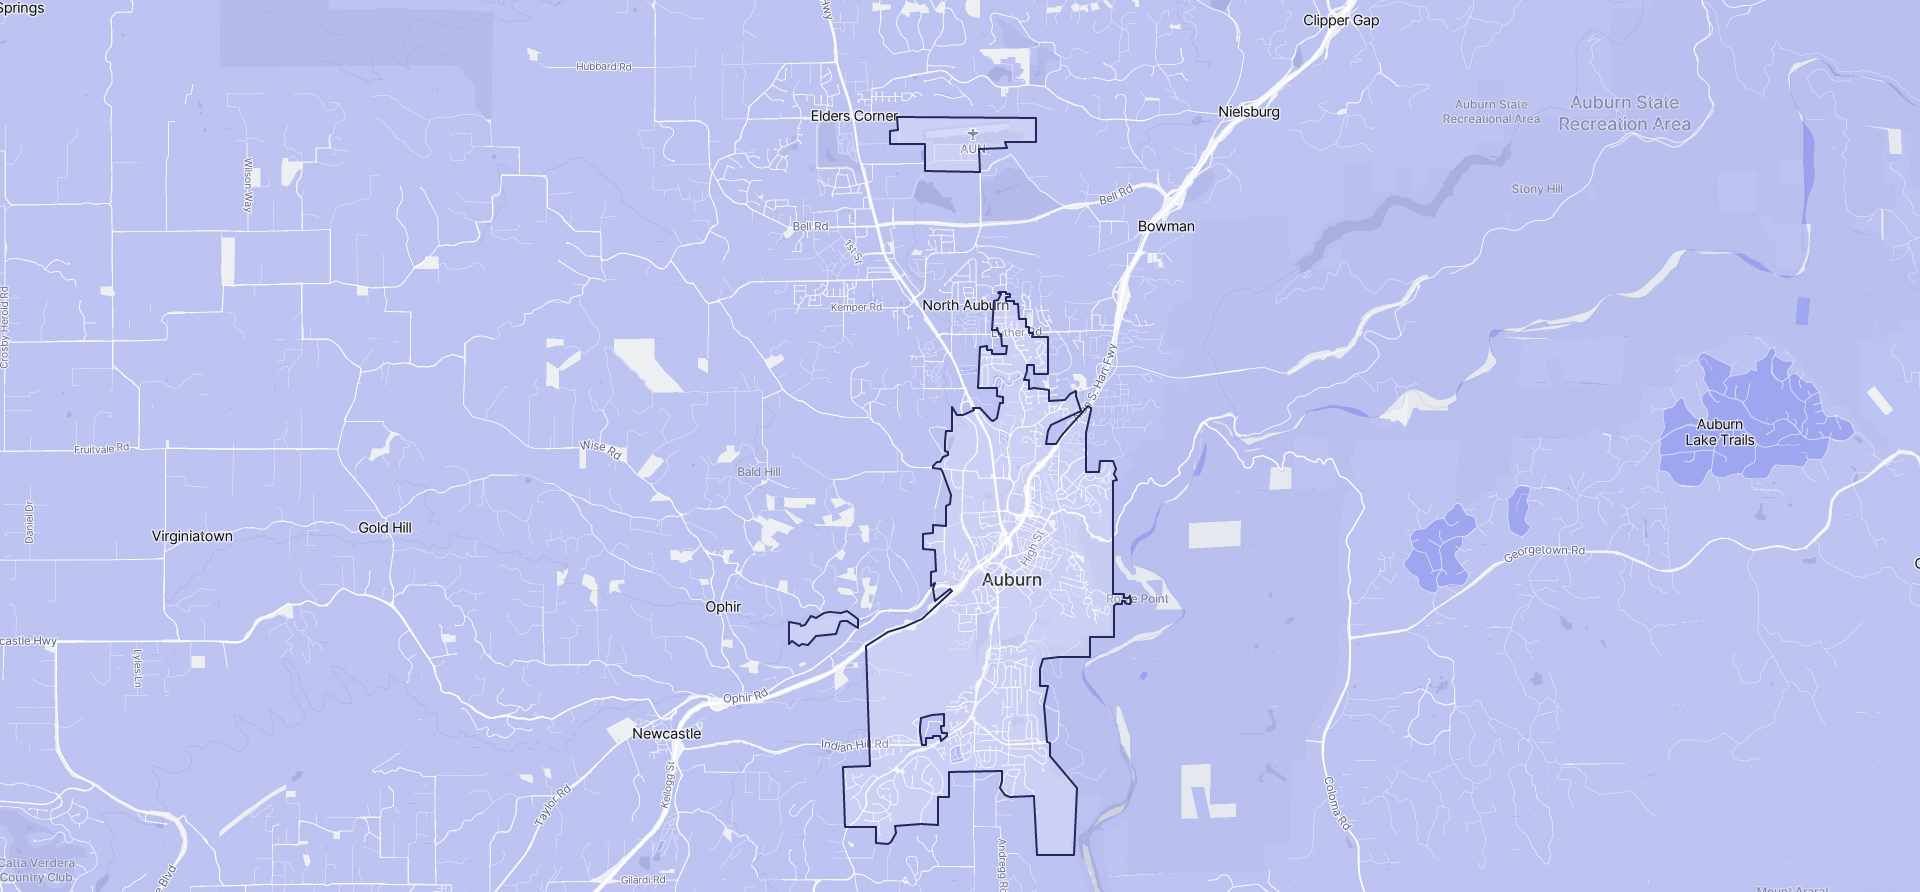 Image of Auburn boundaries on a map.